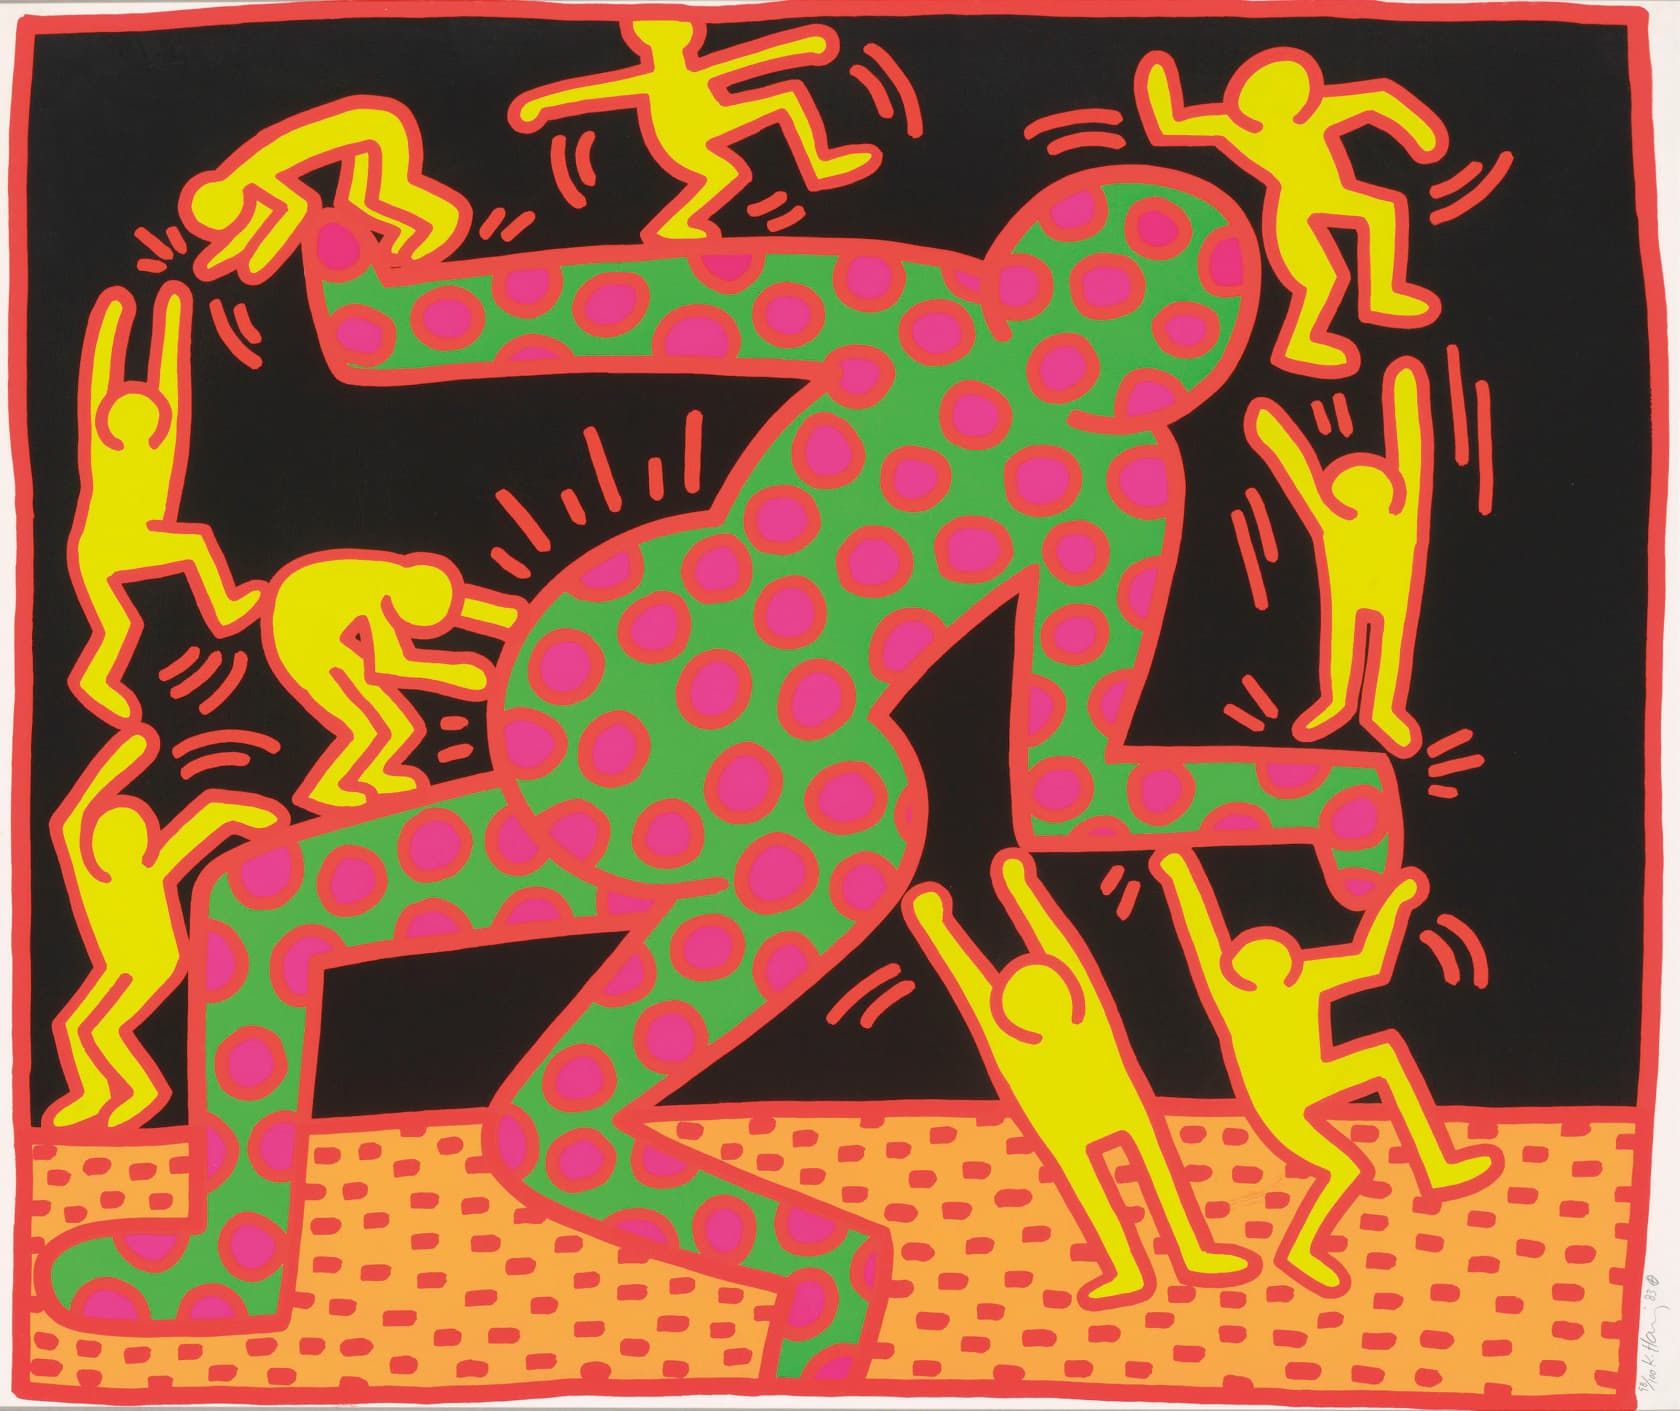 Keith Haring, Fertility Suite Untitled 3, 1983